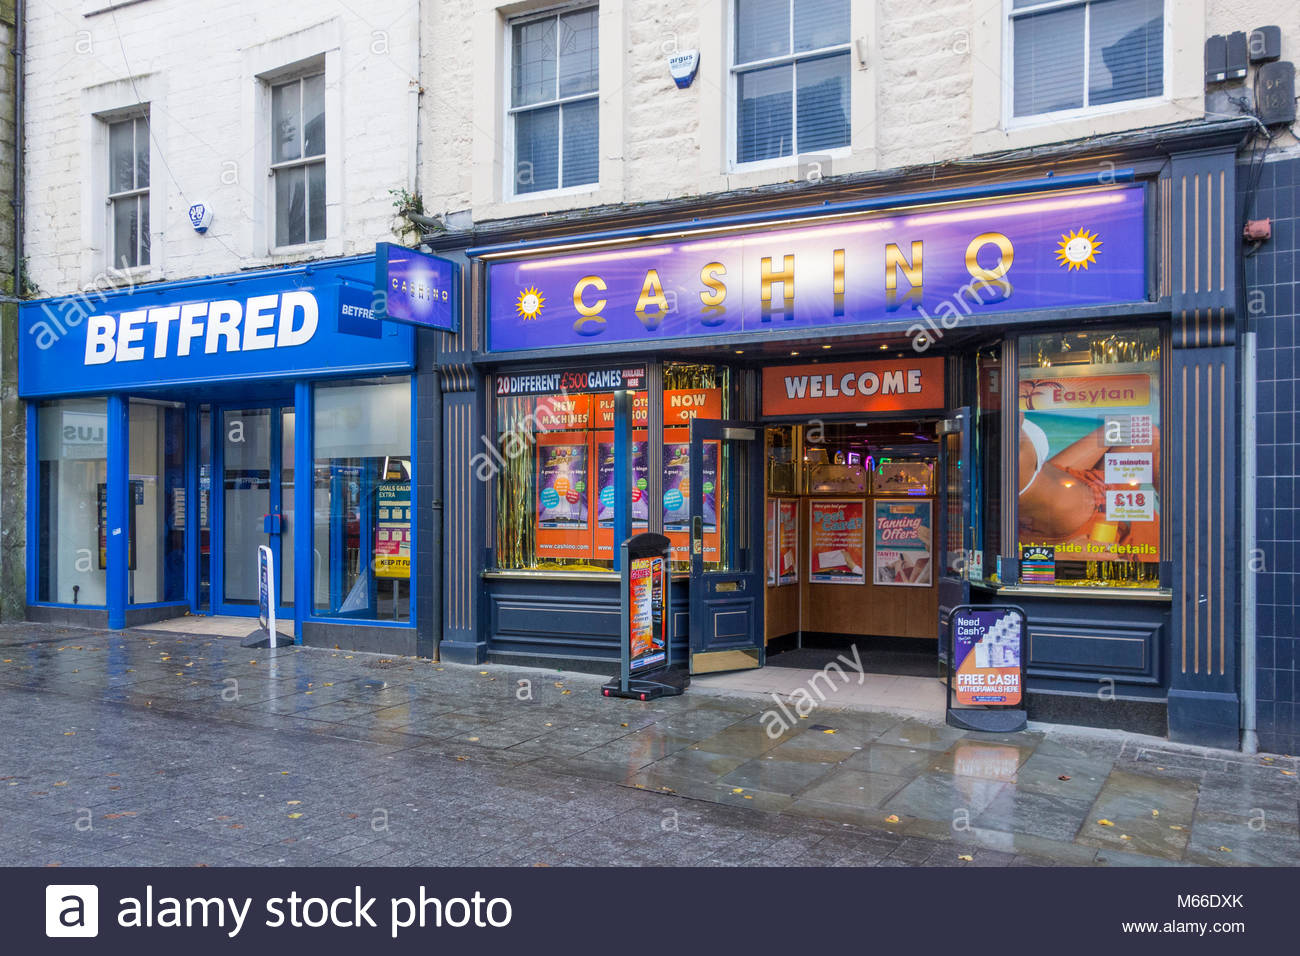 Betfred betting shop and Cashino amusement arcade next to each other in Cheapside, Lancaster, UK - Stock Image